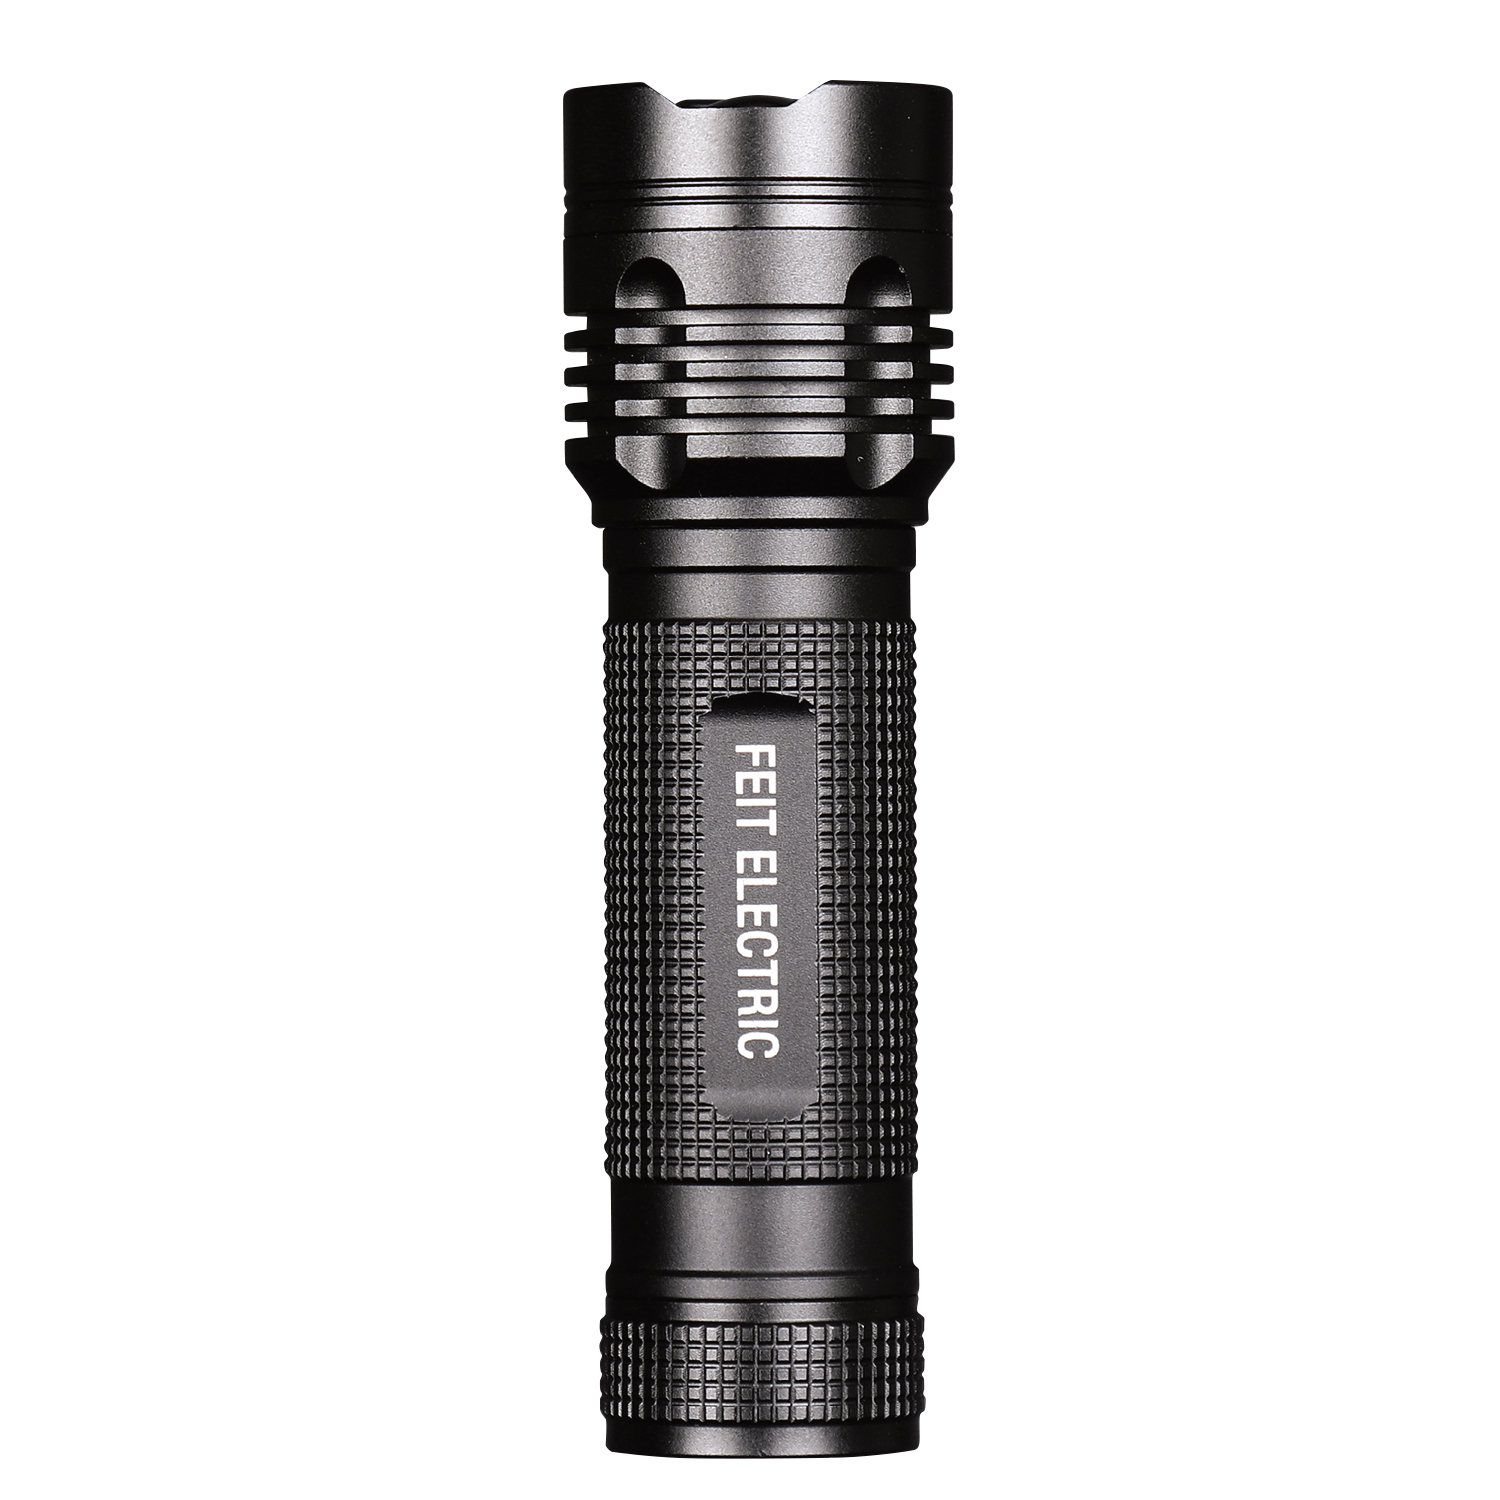 500 Lumen Tactical Falshlight